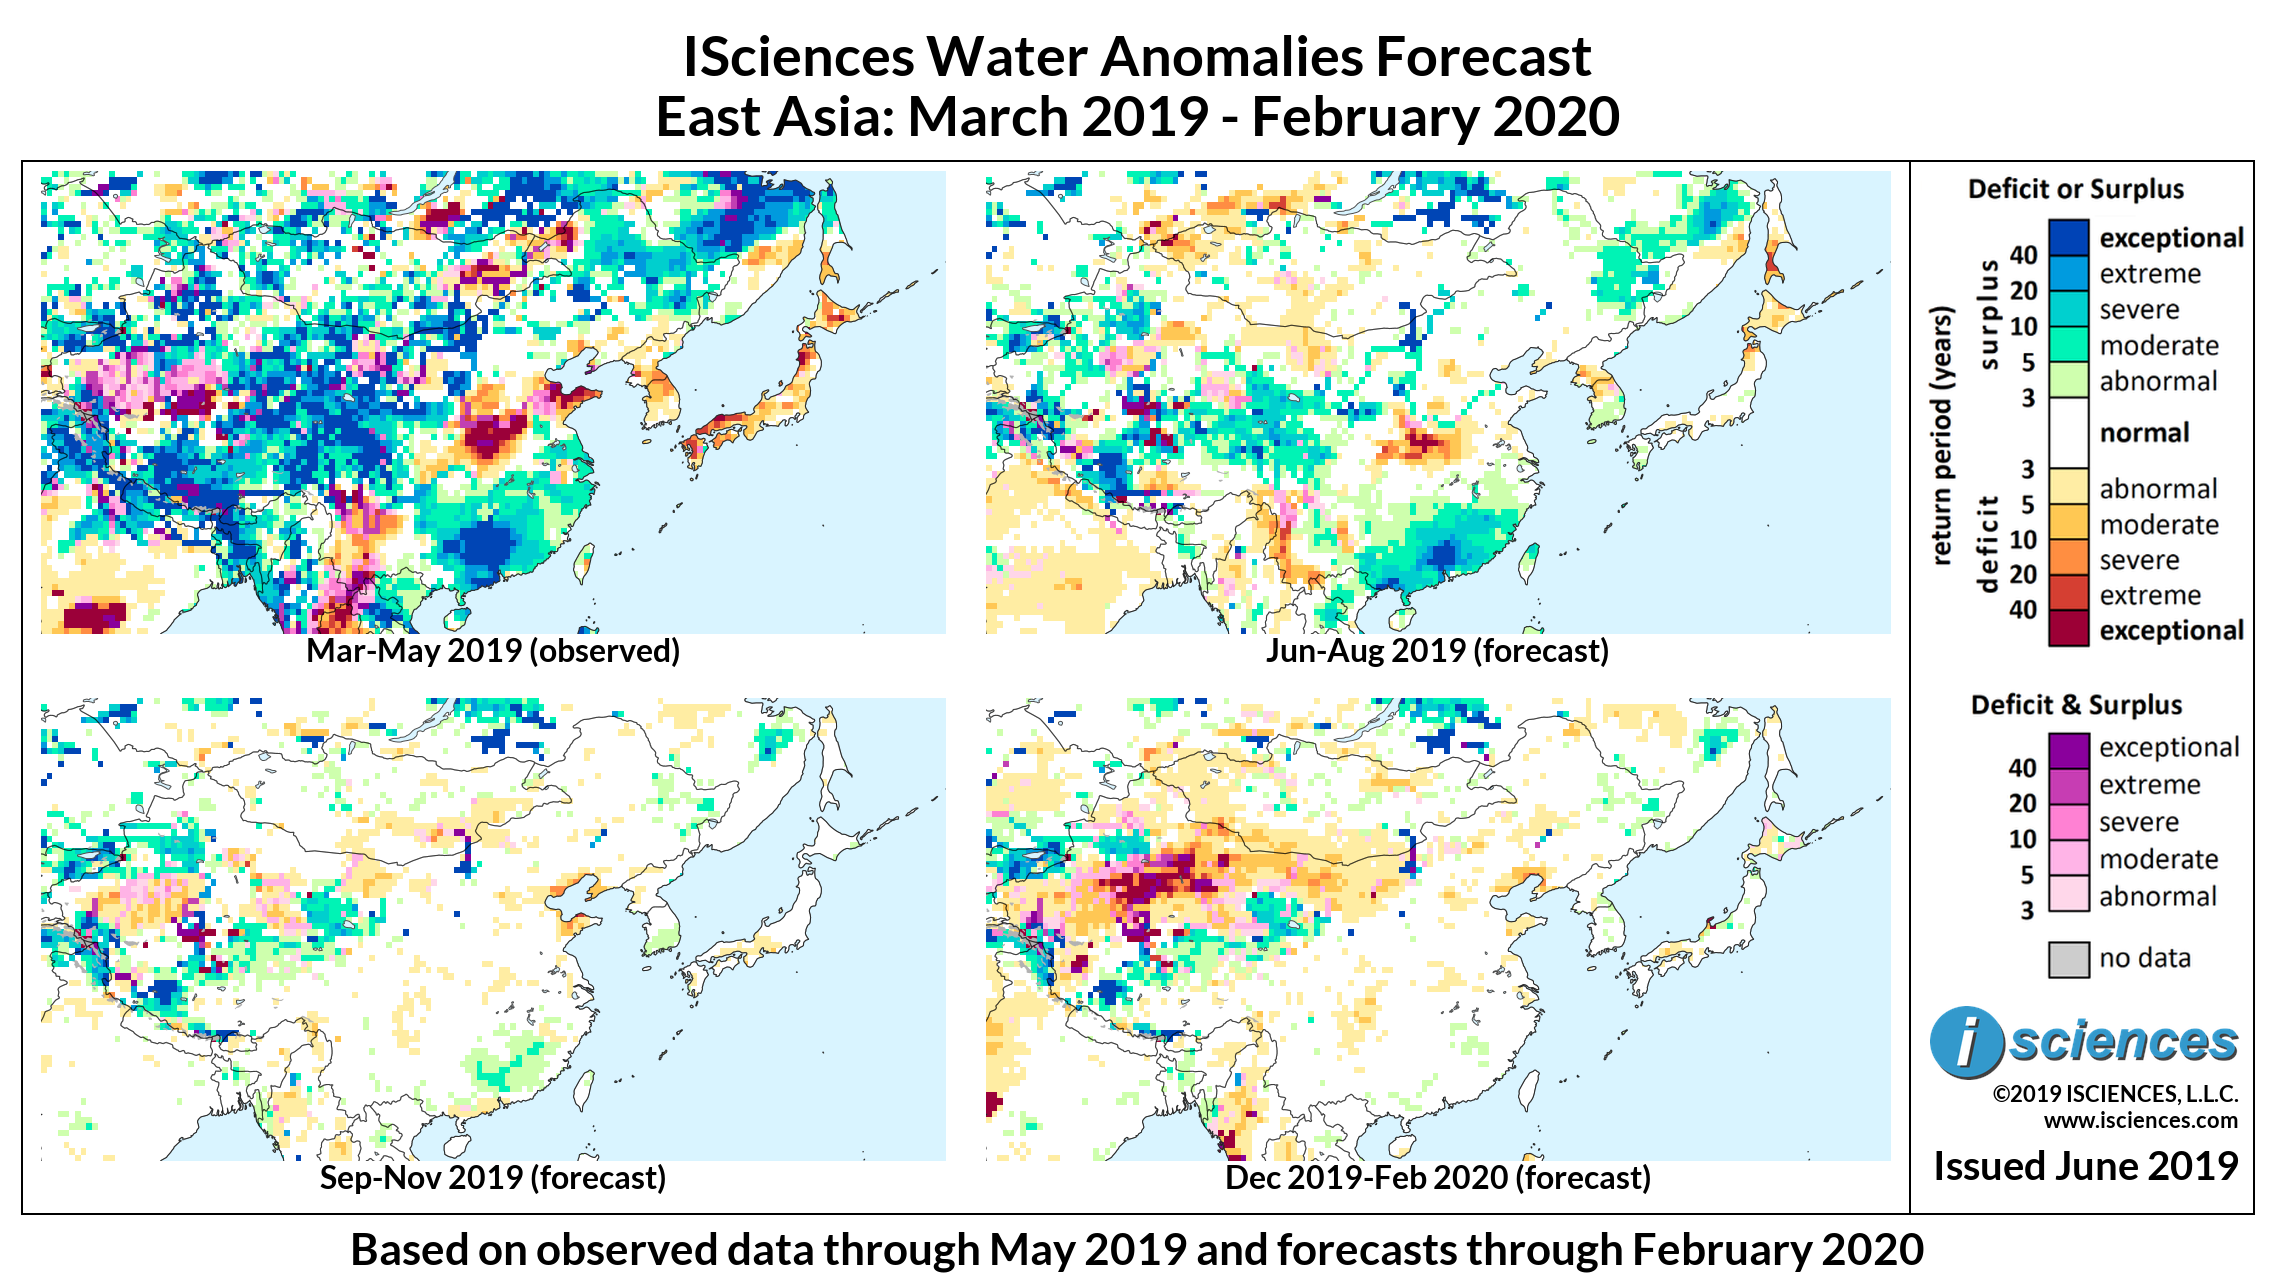 ISciences_R201905_East_Asia_Composite_Adjusted_201903-202002_3mo_panel.png